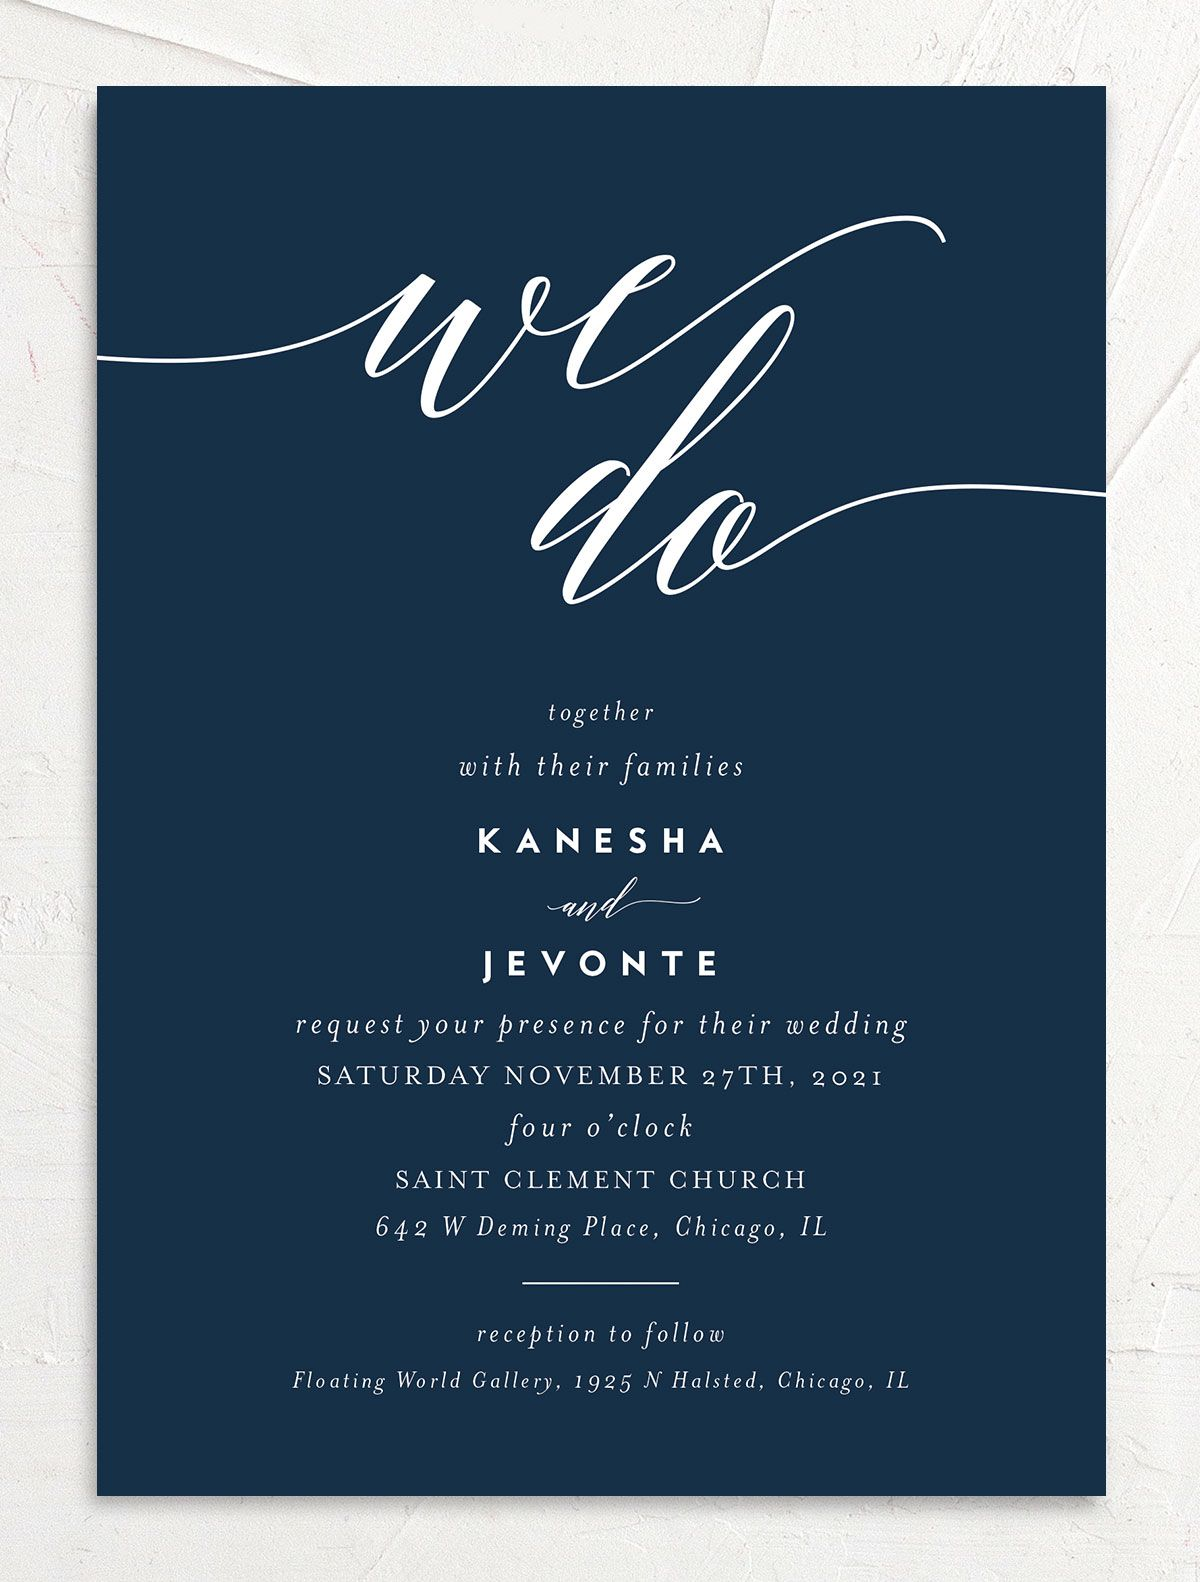 We Do Wedding Invitation front blue